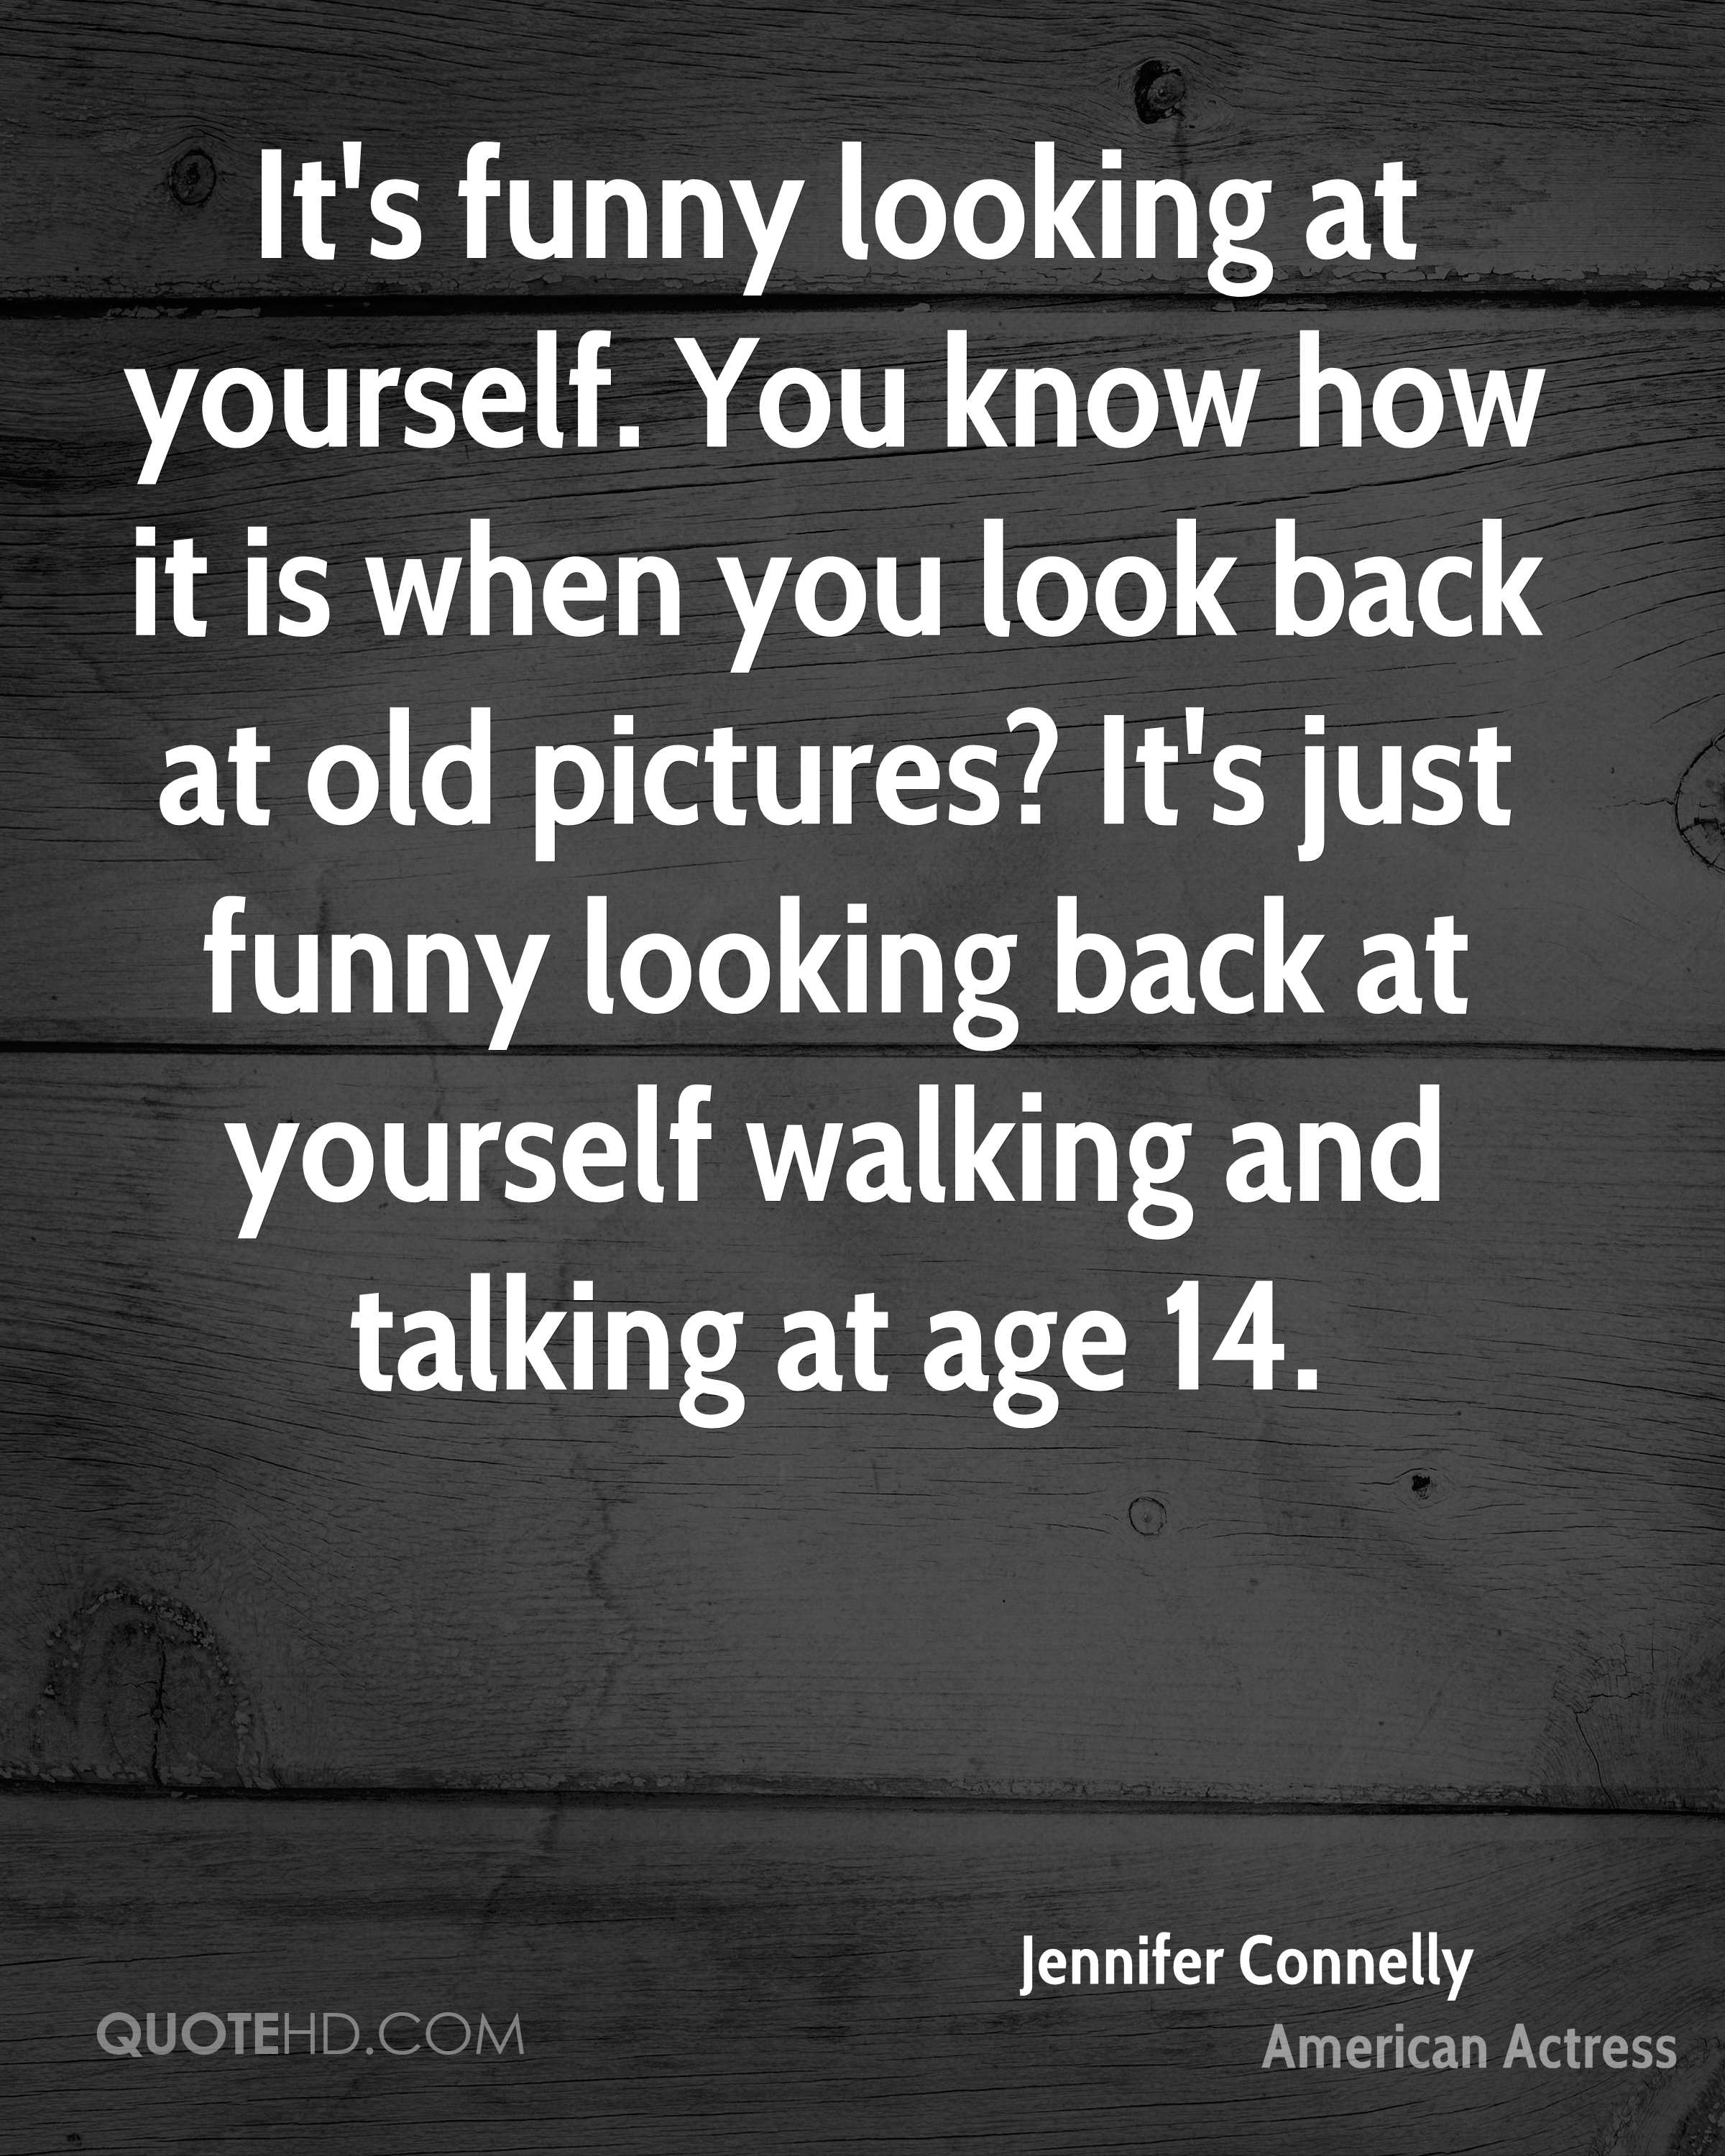 Jennifer connelly funny quotes quotehd its funny looking at yourself you know how it is when you look back at solutioingenieria Choice Image